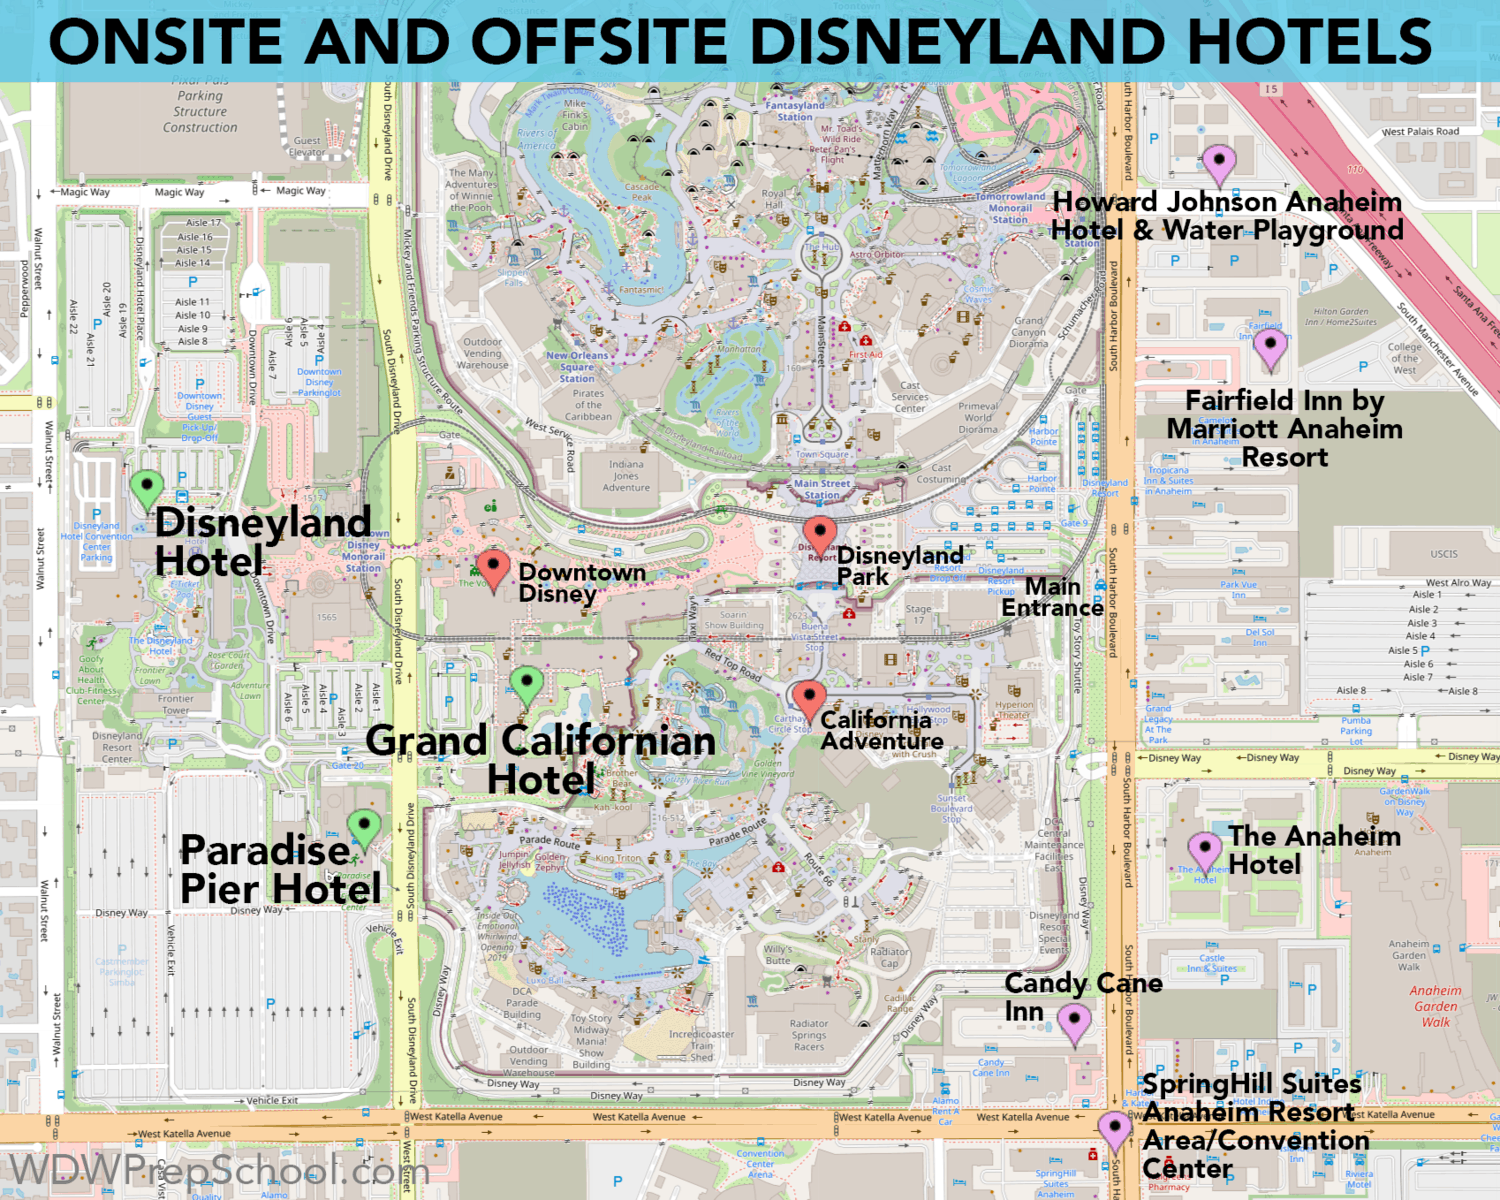 Pros and cons of Disneyland hotels (onsite and nearby ... Disneyland Hotels Map on disneyland tickets, downtown disneyland map, disneyland california, disneyland vacation packages, current disneyland map, disneyland bathroom map, disneyland castle, disneyland parade map, disneyland good neighbor map, disneyland neighborhood map, candy cane inn map, disneyland entrance map, disneyland drop off location, disneyland shopping, disneyland map 1995, shanghai disneyland location map, disneyland concept map, disneyland layout map, tokyo disneyland map,